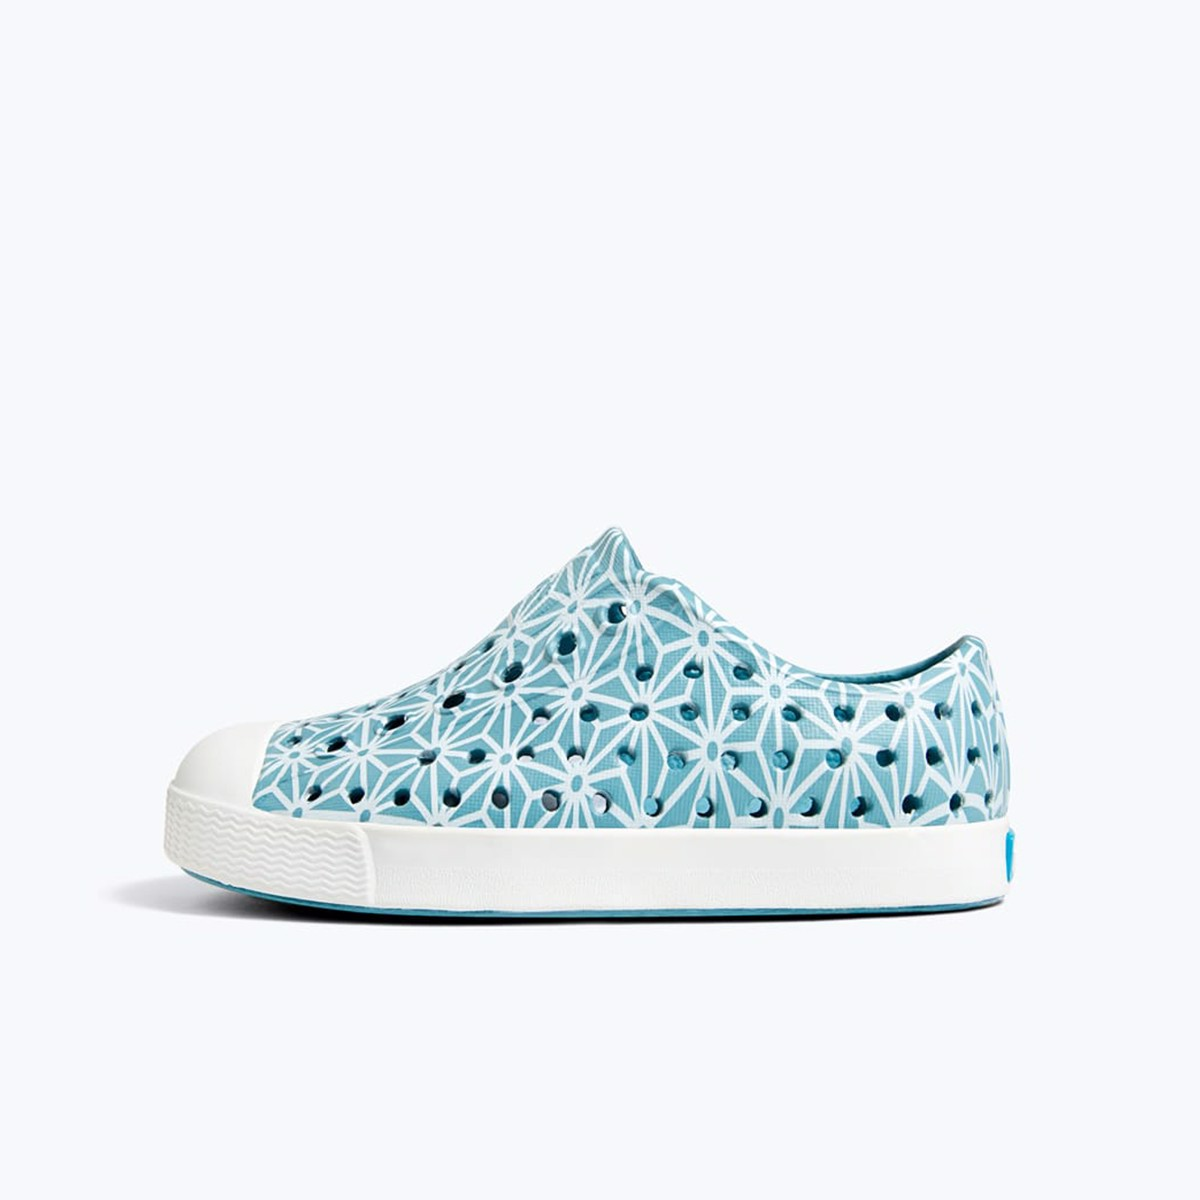 Giày native j jefferson print junior (12100101) fuji blue/ shell white/ asanoha